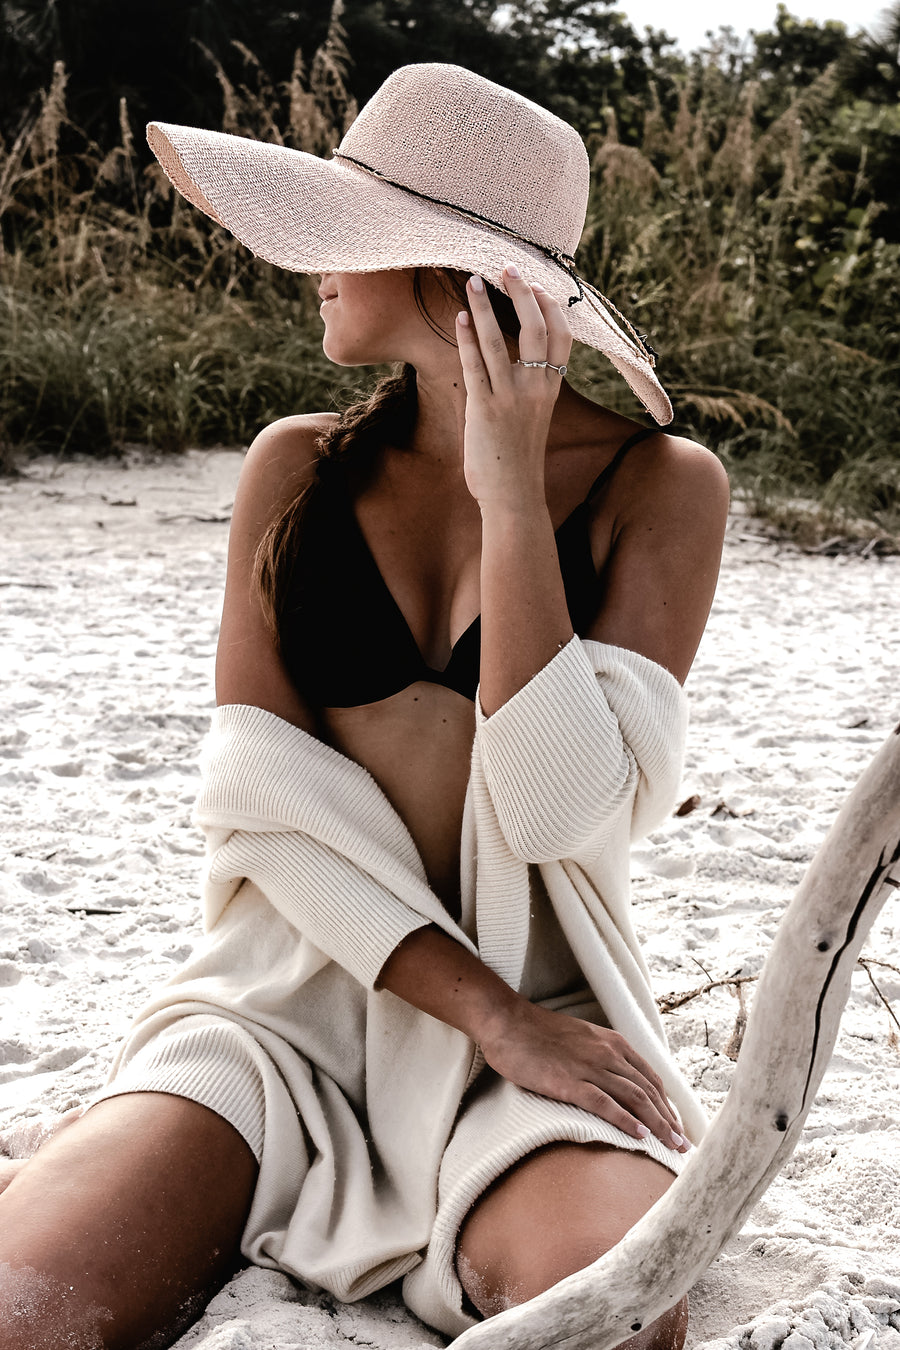 Pink floppy straw hat with raffia braid on model at beach.